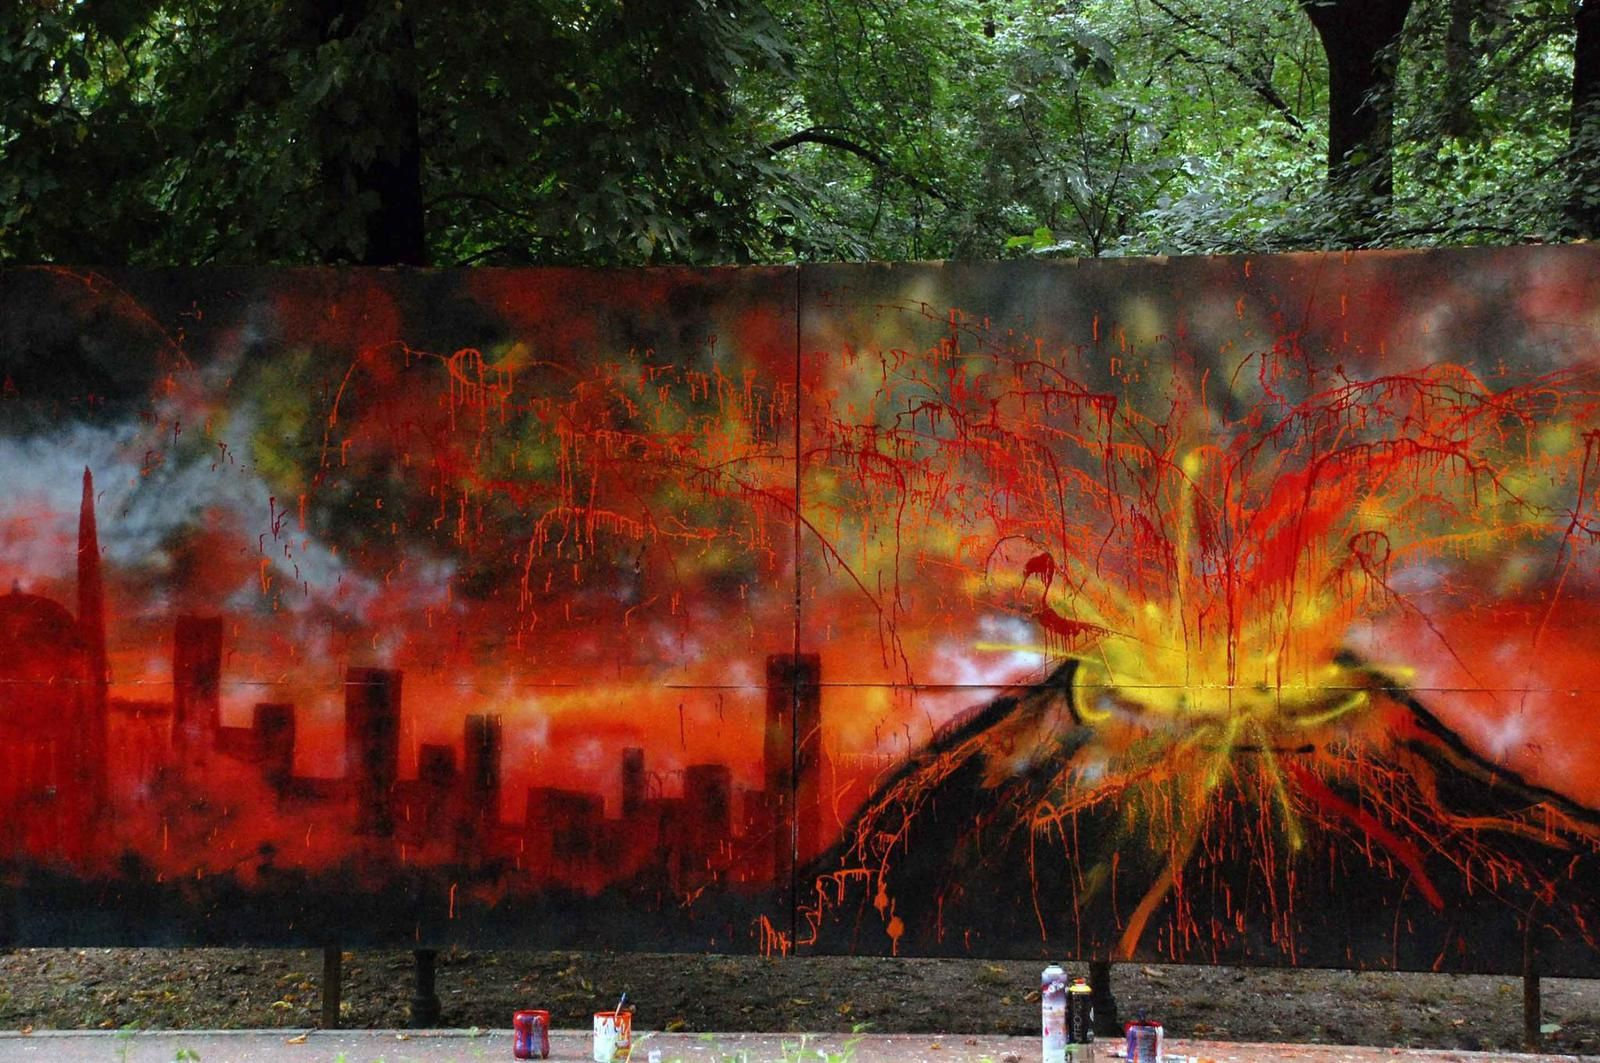 """Volcano getting mad"" by Gina Ster & Dark - ephemeral work in the Cismigiu Park in Bucharest."